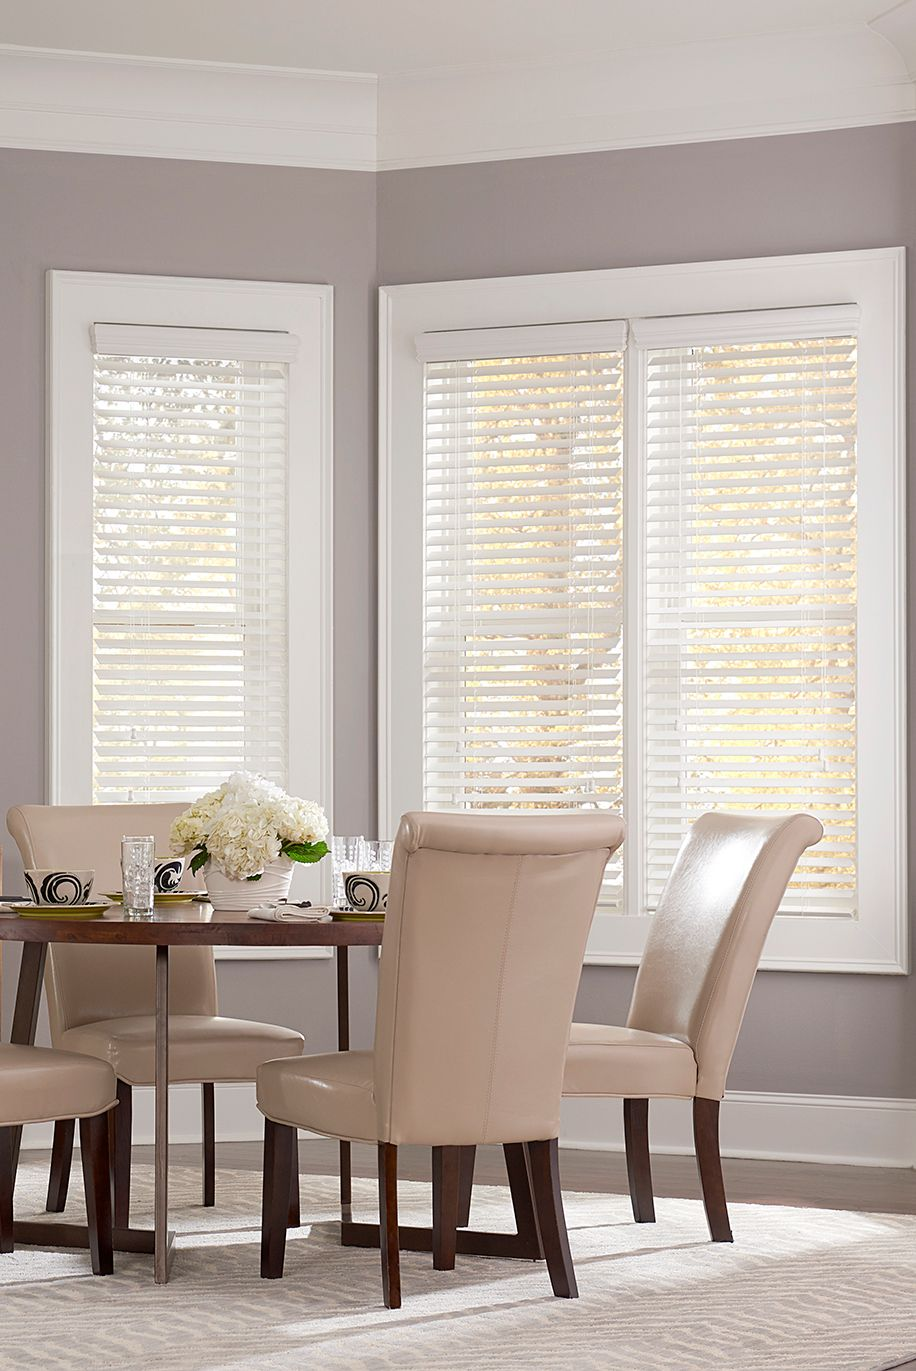 Real wood vs faux wood blinds - Get An Upscale Look With Economy Faux Wood Blinds By Replicating The Unique Style Of Real Wood At An Economical Price Order Free Samples